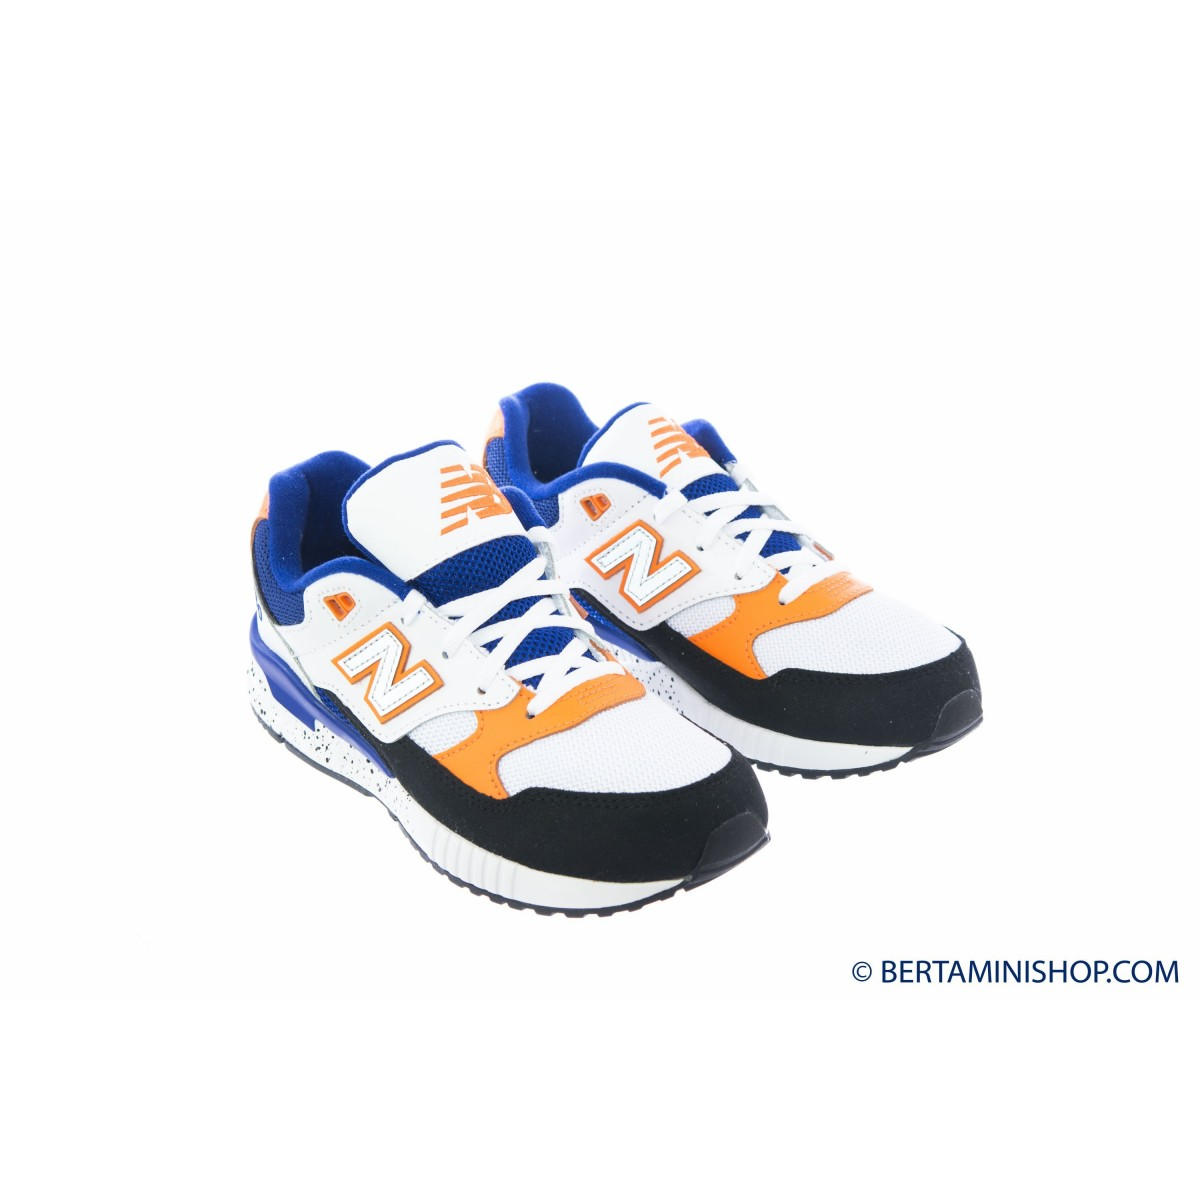 Shoes New Balance Kid's - KL 530 BO - Bianca azz arancio